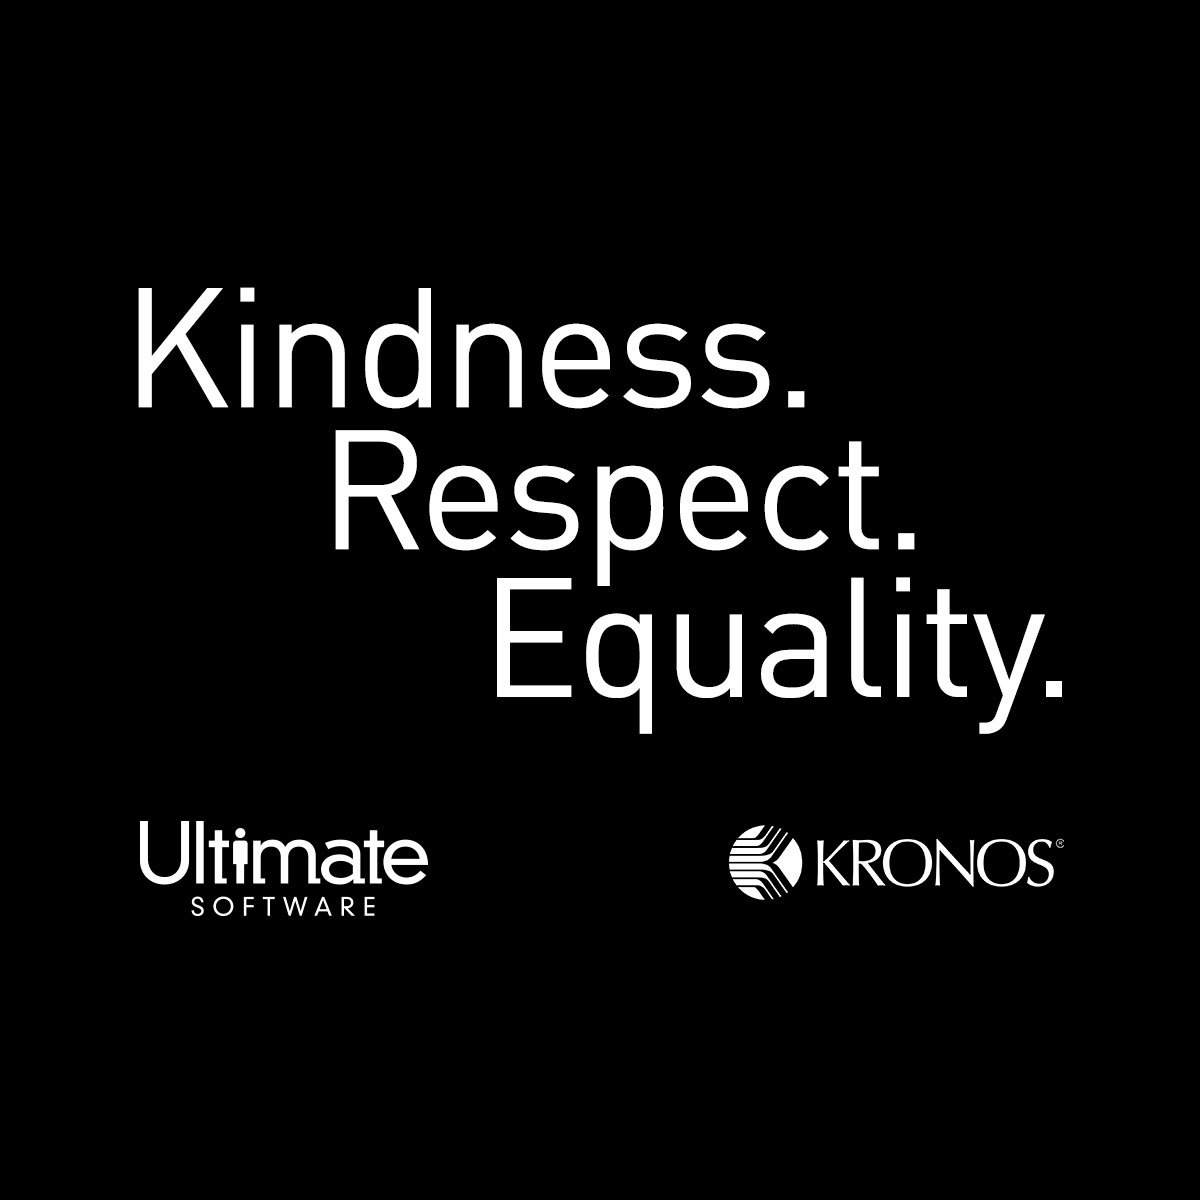 Kindness. Respect. Equality